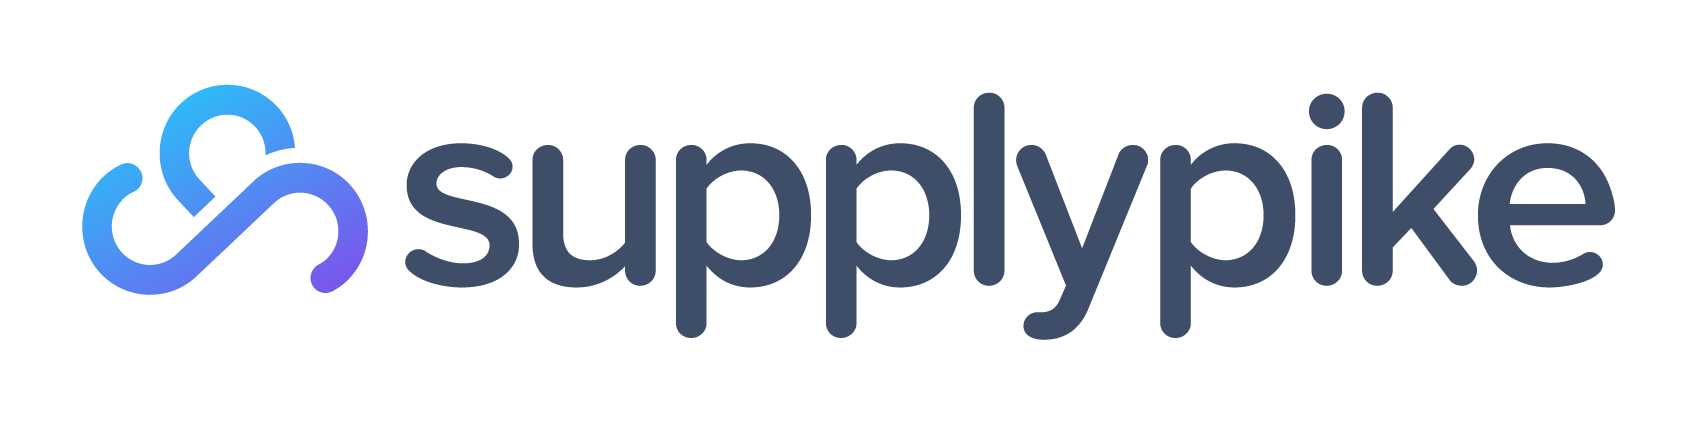 supplypike logo